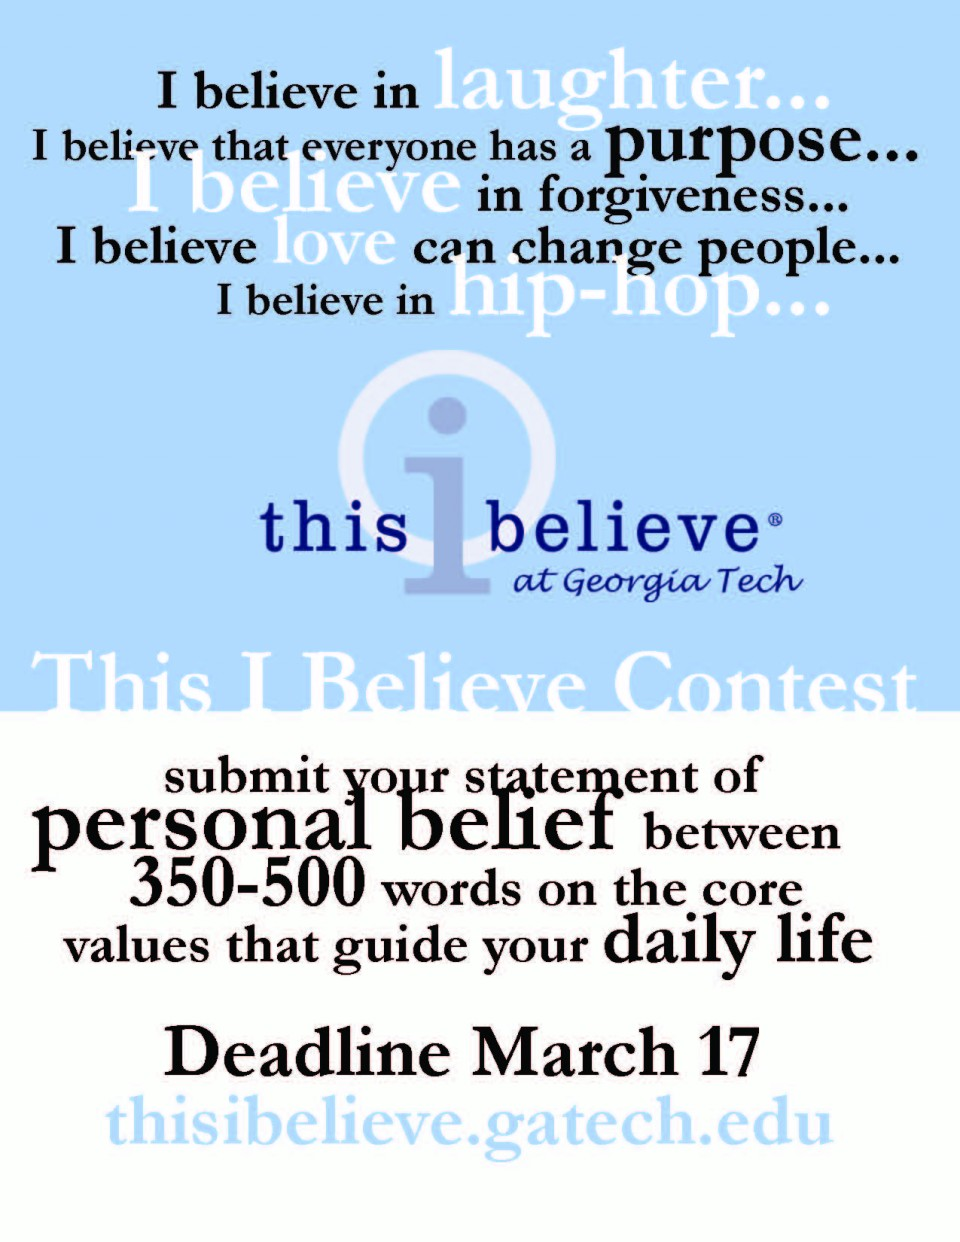 022 This I Believe Essay Topics Example Thisibelieve8 Fearsome Funny Prompt 960